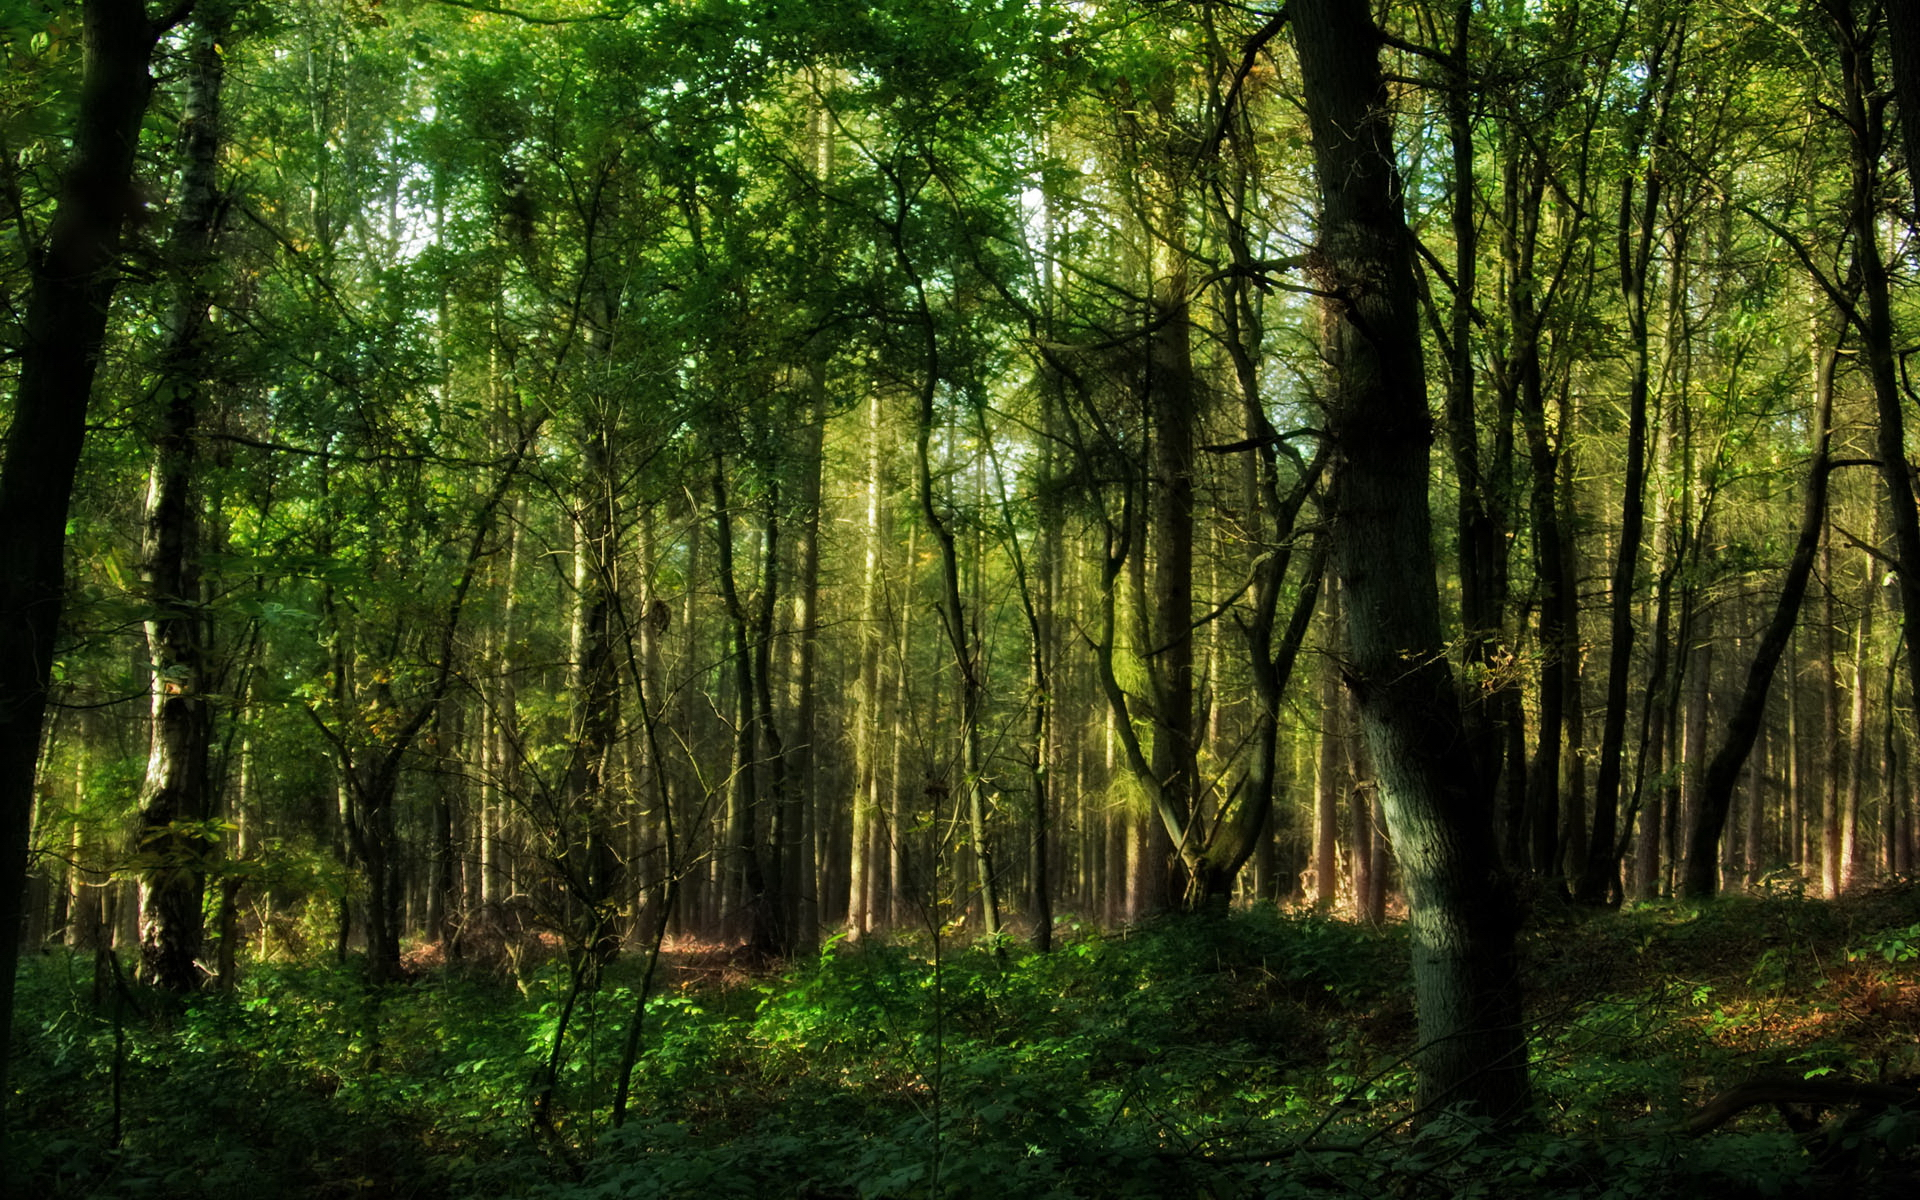 ... In the forest ...